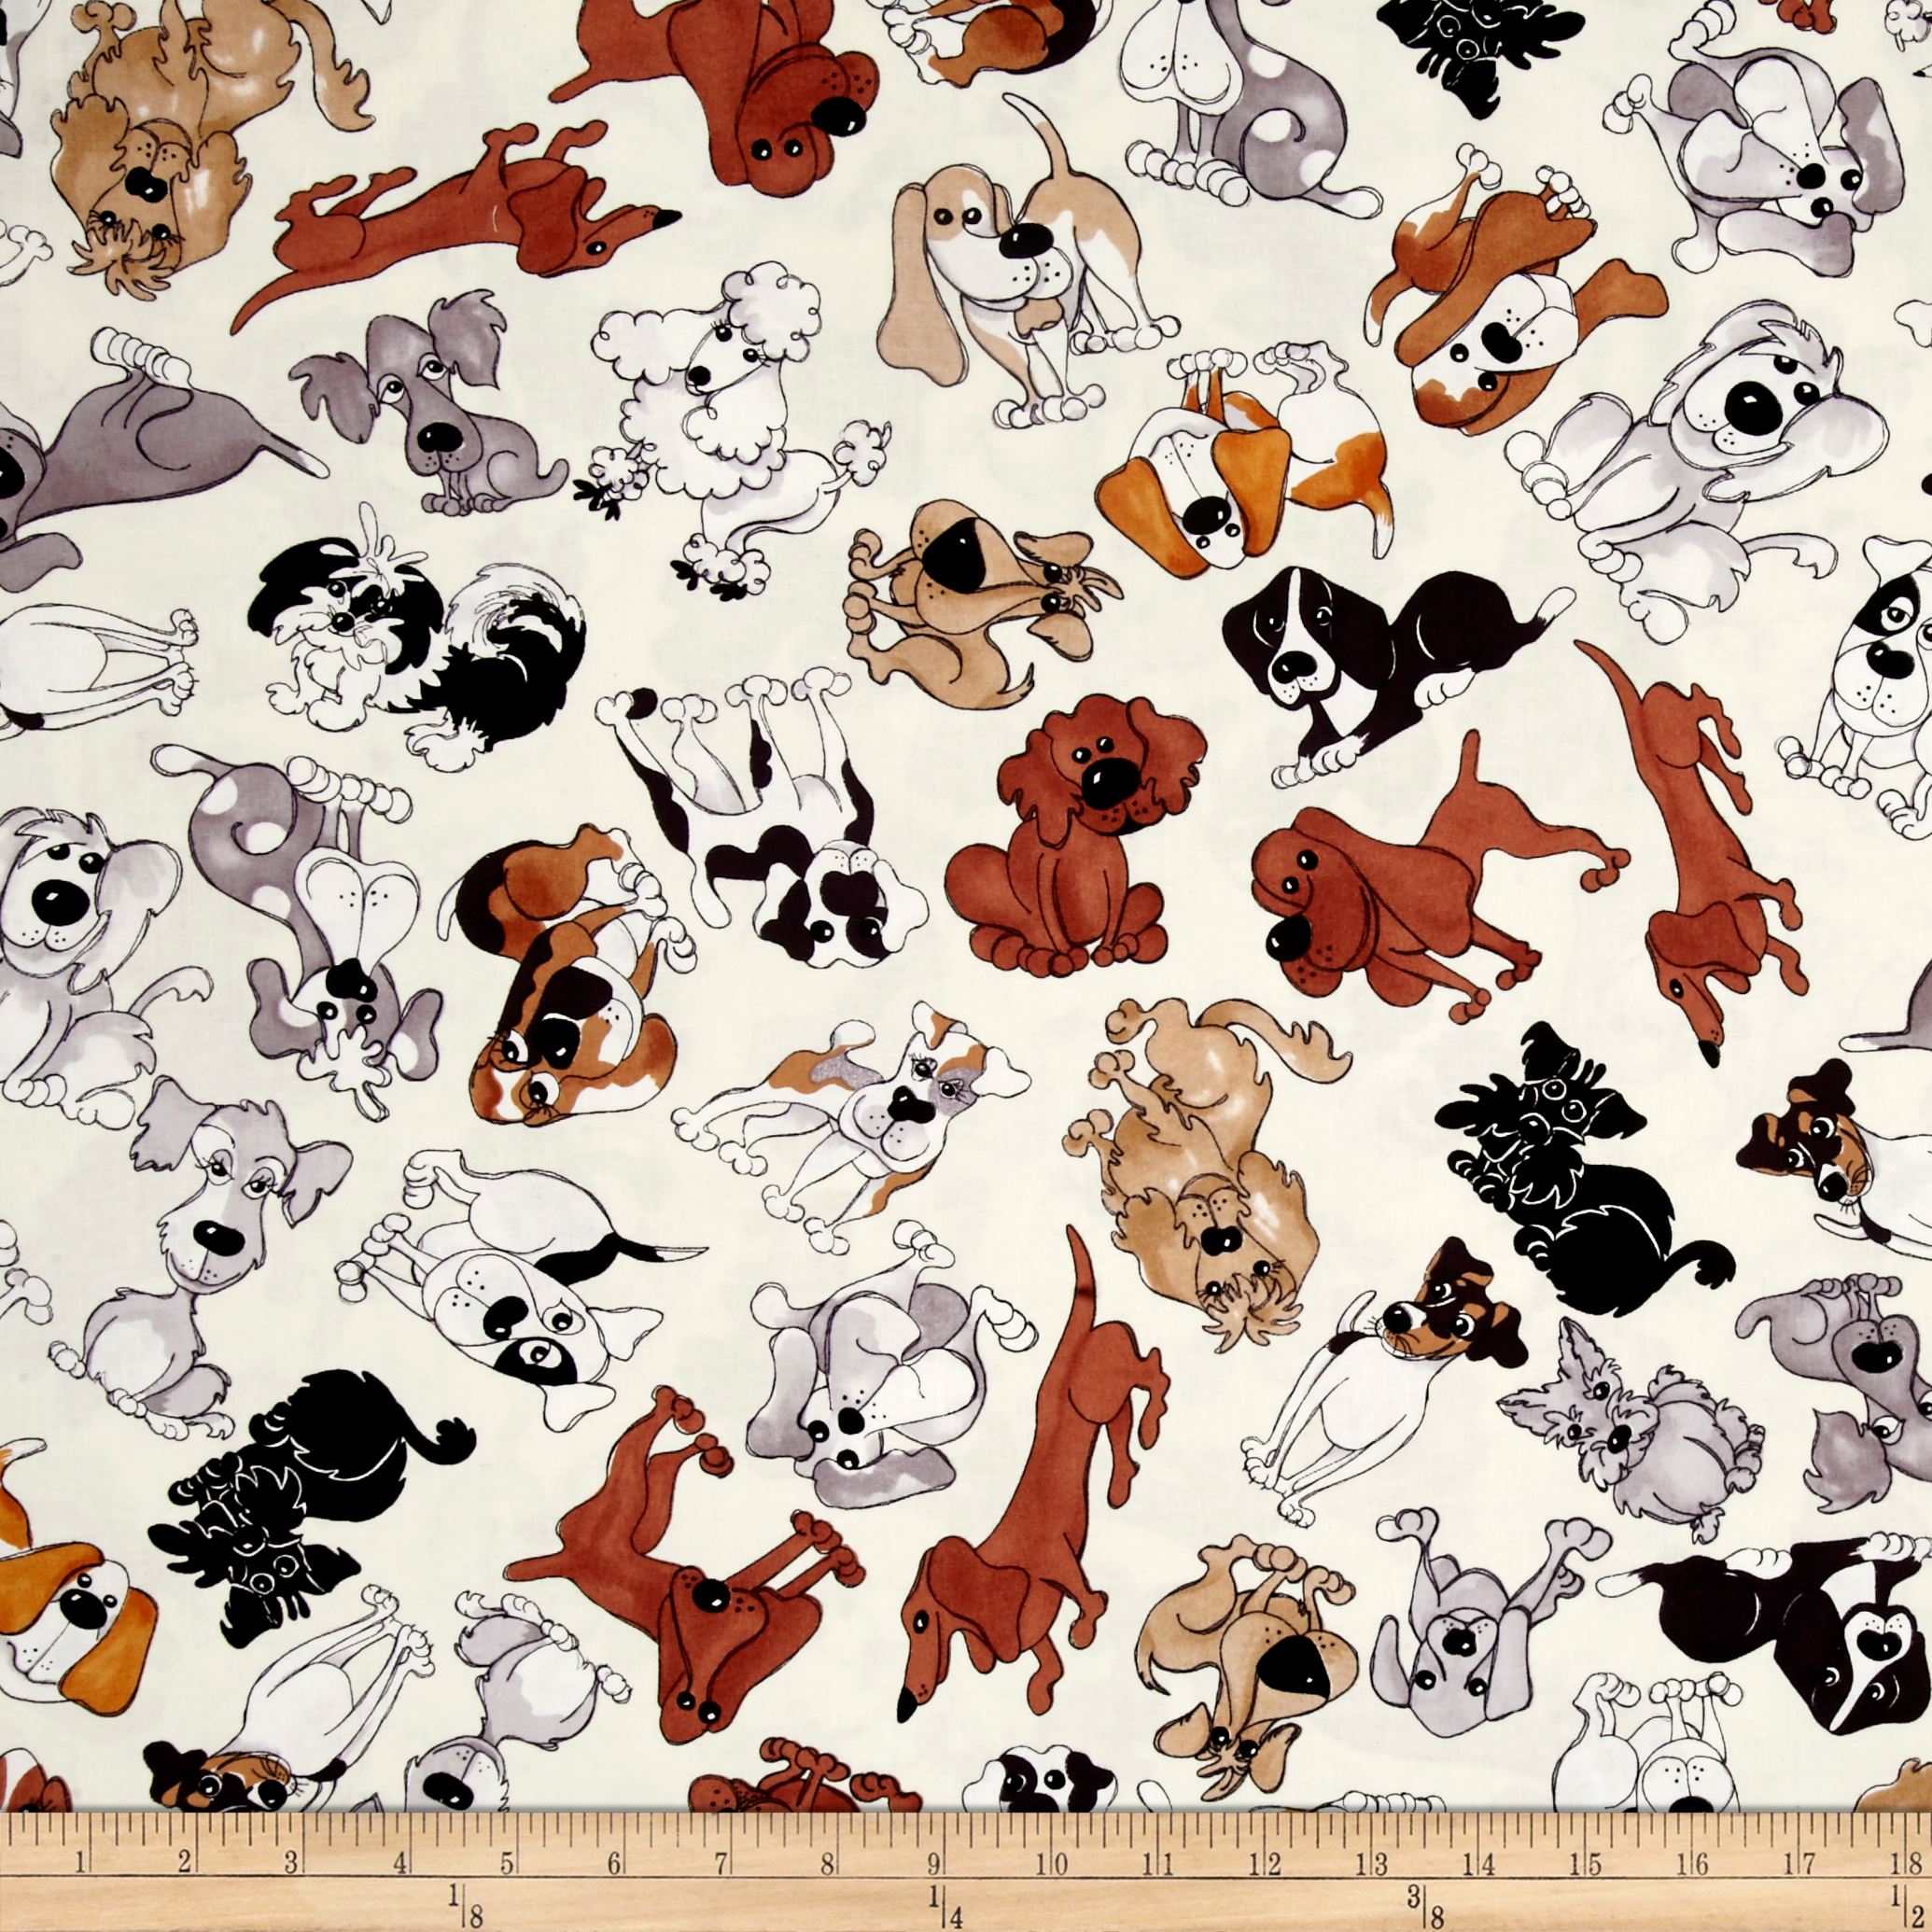 Loralie Designs Dear Doggie Delight Tossed Doggies Bone Fabric